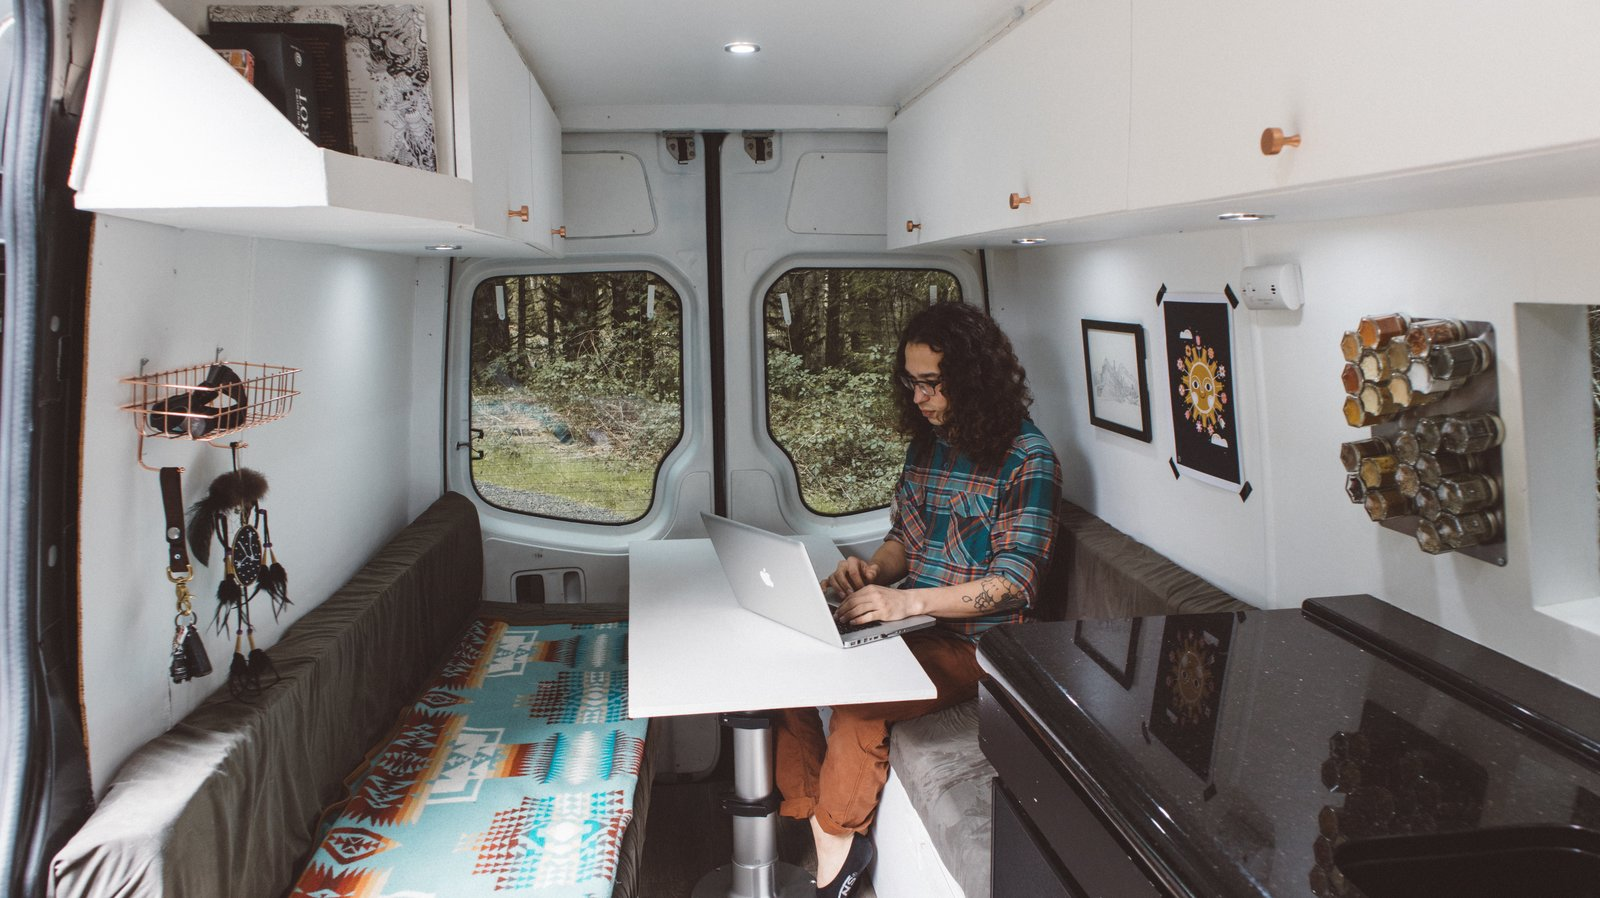 Dining Room, Bench, Table, and Recessed Lighting The interior of the van incorporated the couple's personal style. Artwork and blankets also reflected their artistic aesthetic.    Photo 9 of 12 in These Digital Nomads Live, Work, and Travel in a Sprinter Van